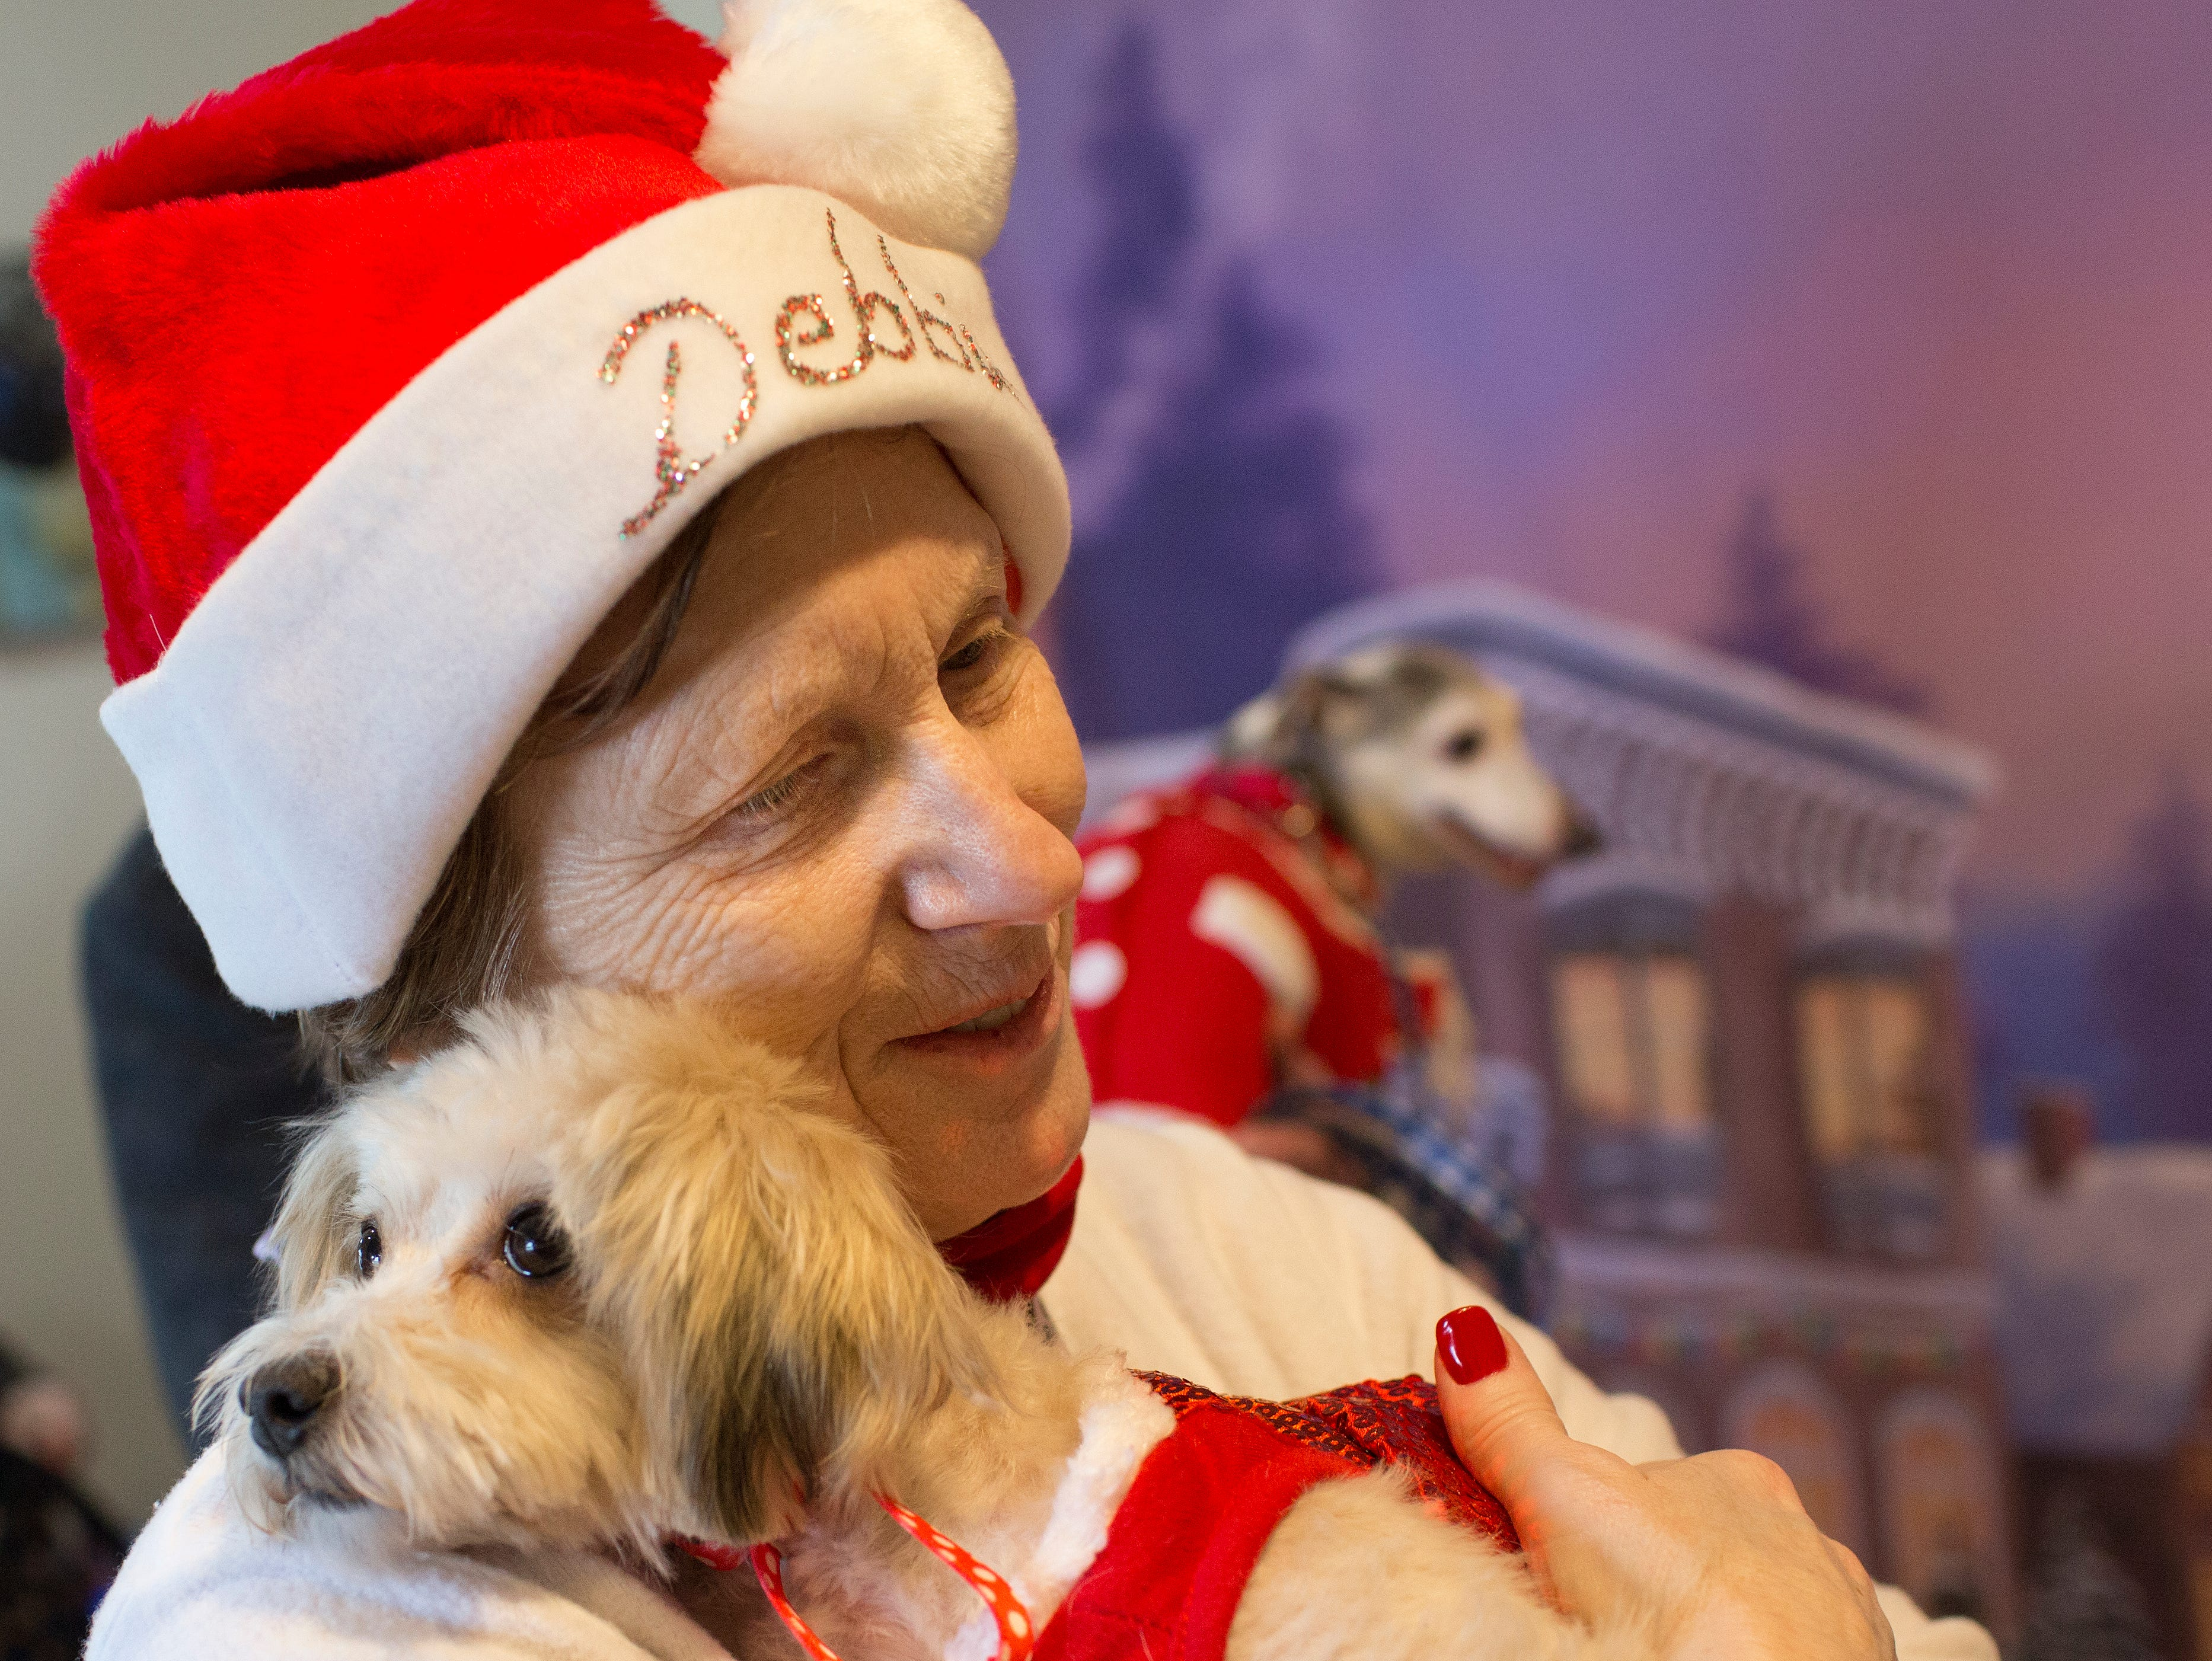 RBARI volunteer Debbie Zorbas holds Mandy, a four year old Poodle Maltese during the Santa Paws photo session for pets at the Rampo-Bergen Animal Refuge Inc. in Oakland on Saturday, Dec. 1, 2018. Sponsored by Allstate, all proceeds from the photo sessions go directly towards the care of animals rescued by RBARI.